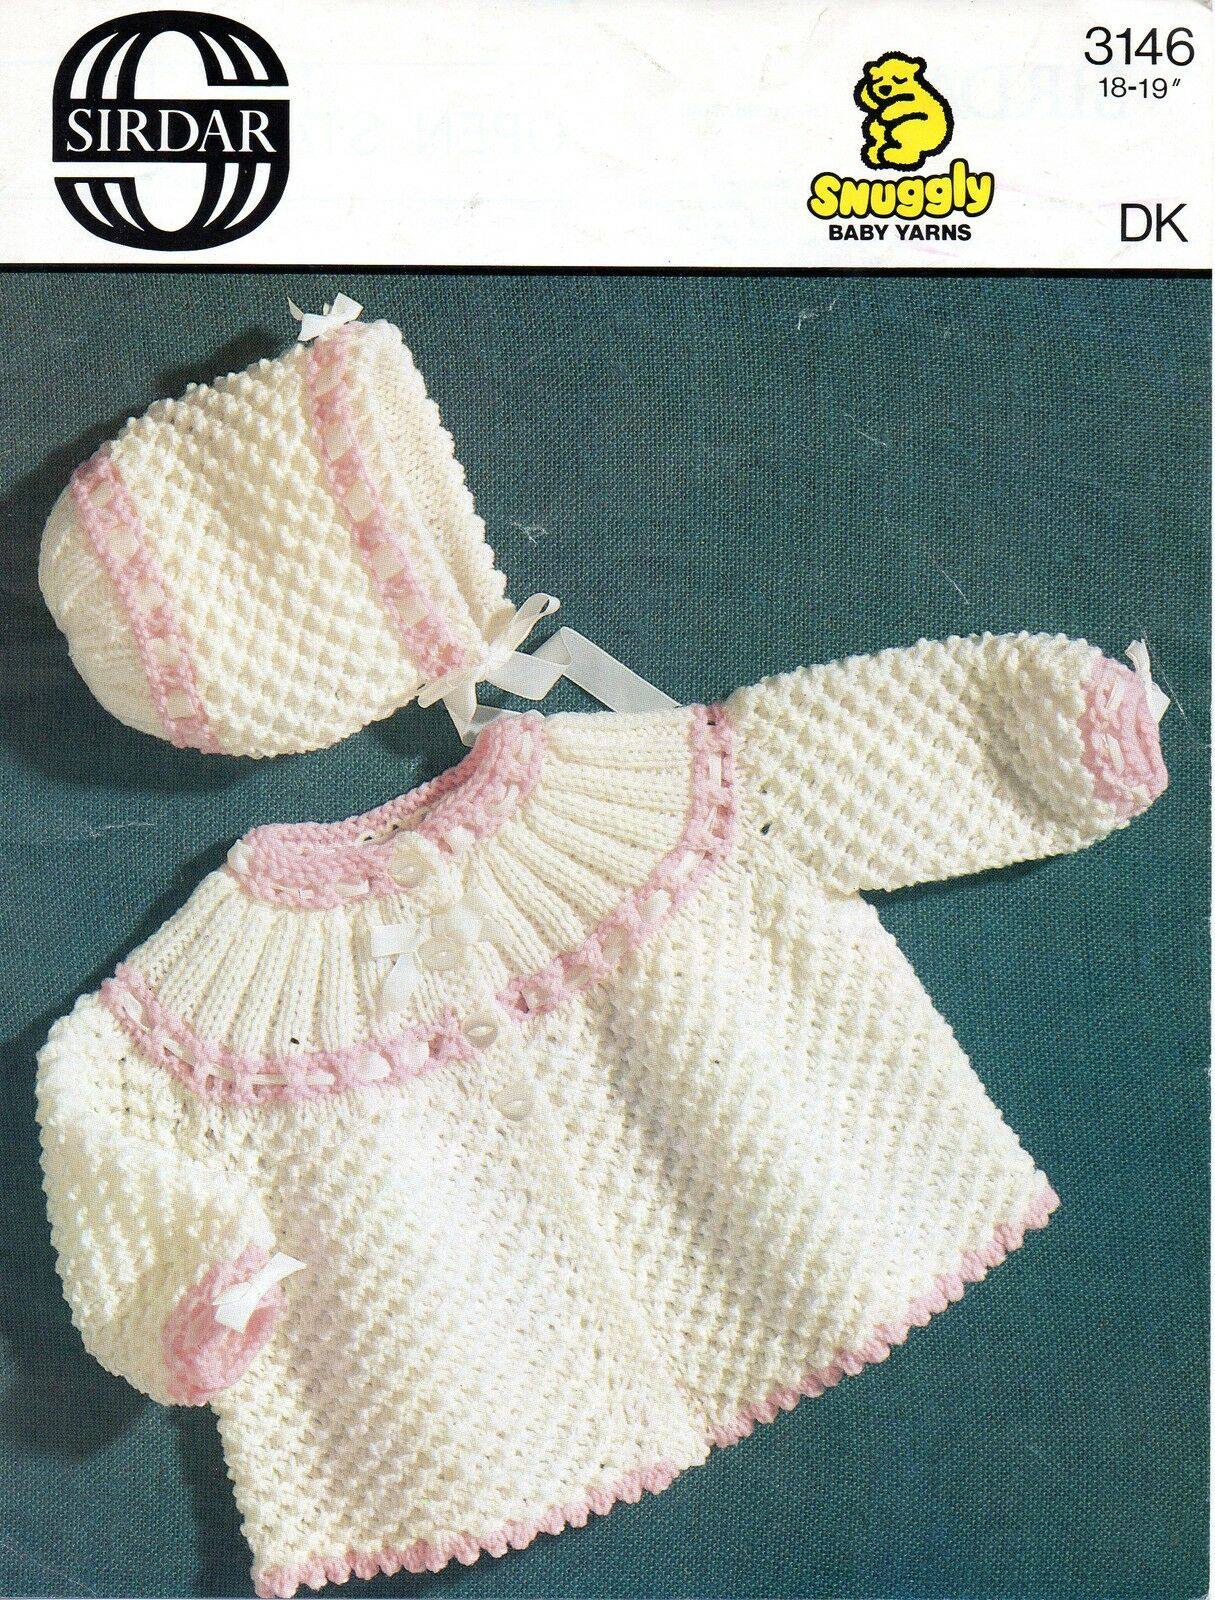 Old Sirdar Knitting Patterns : Sirdar 3146 Vintage Repro Knitting Pattern Baby Girls Cardigan Hat DK 18-19&q...